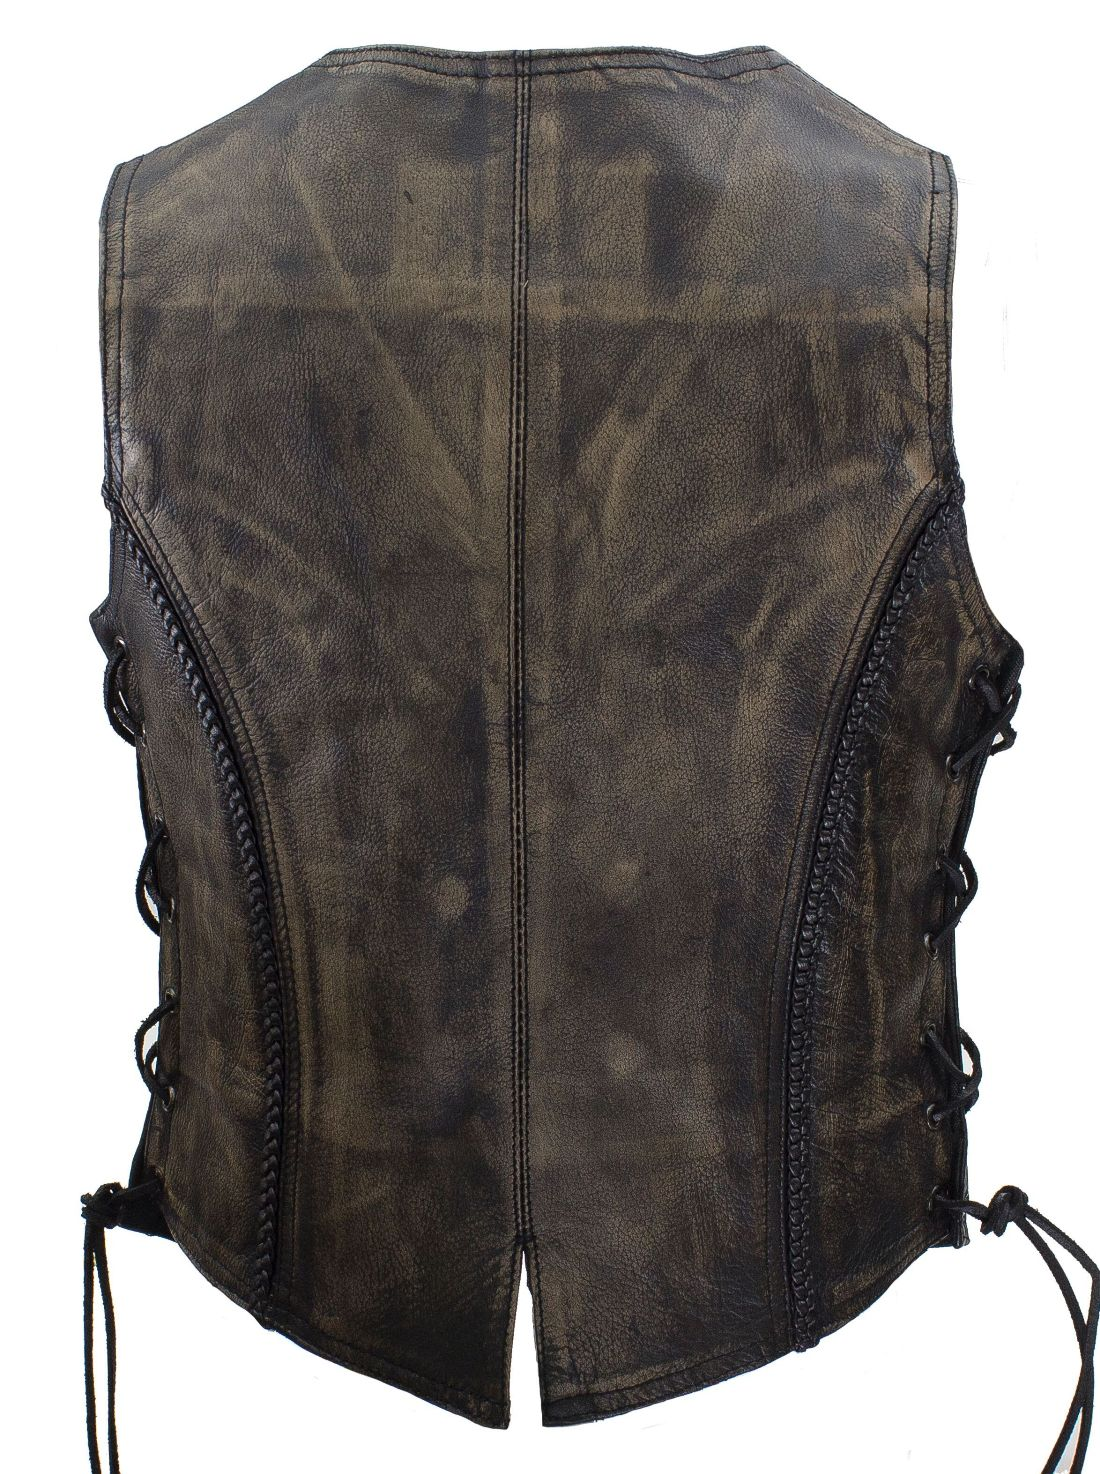 Womens Distressed Brown Leather Jacket Vest